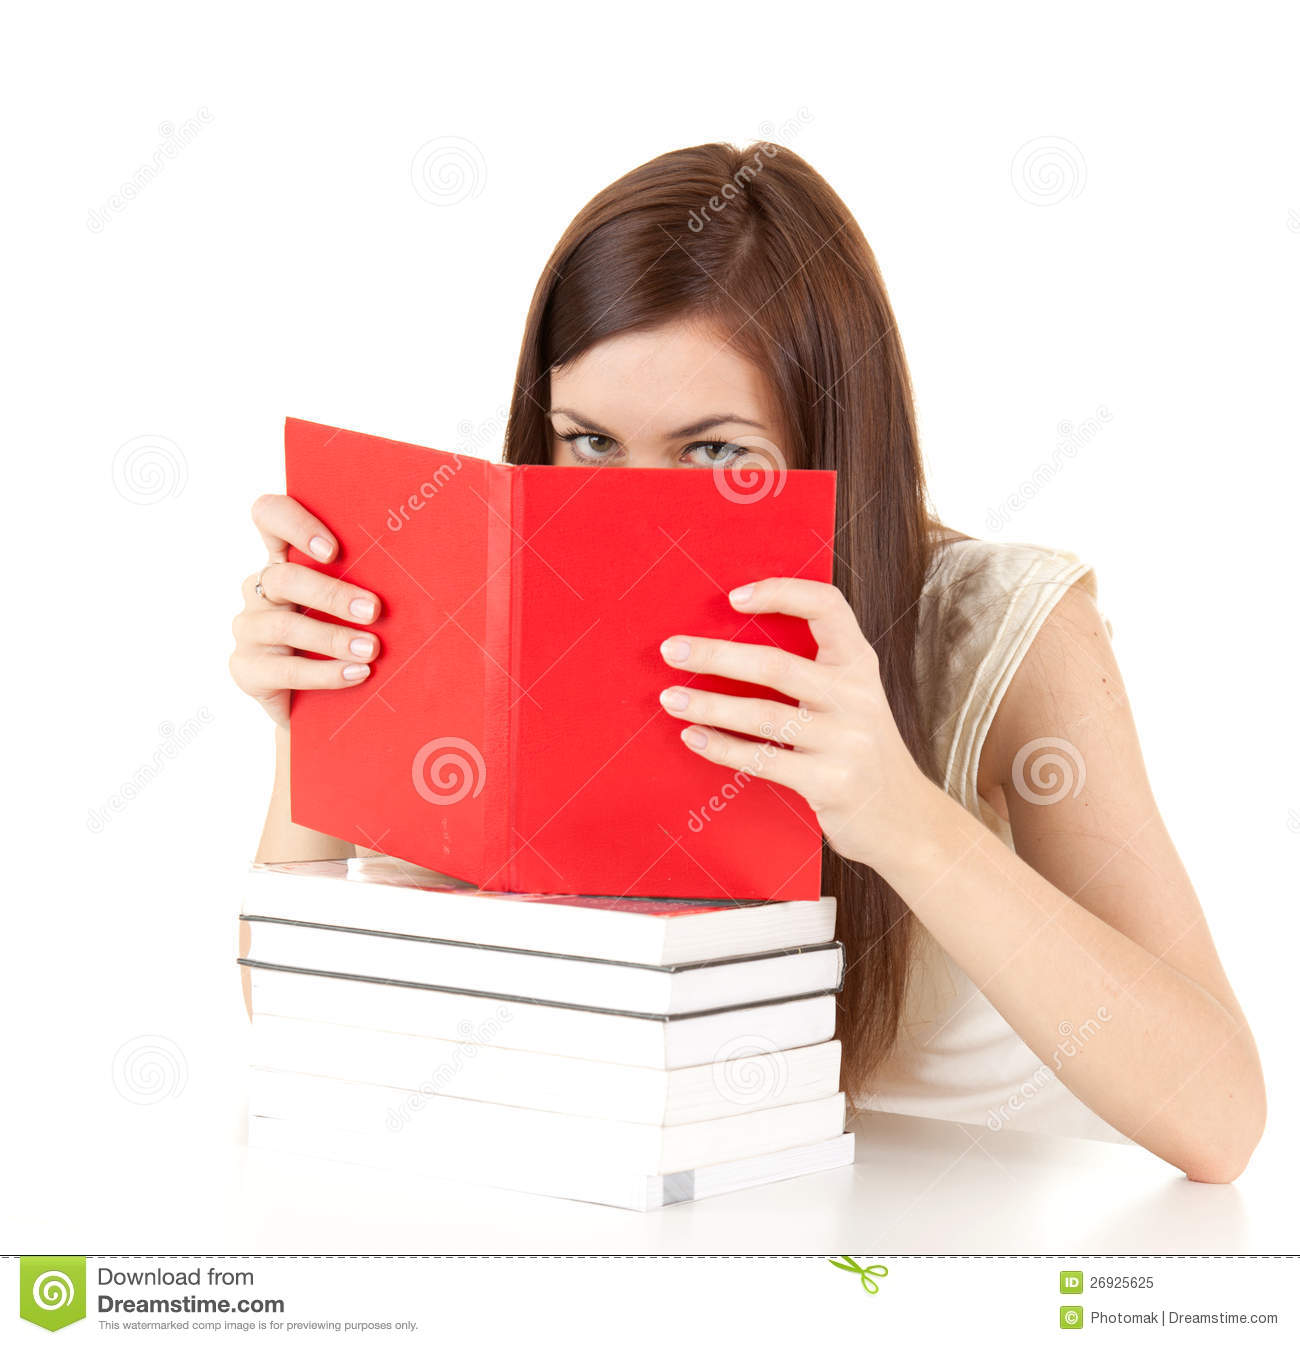 Book Covering Face : Ashamed student girl covering face book stock image